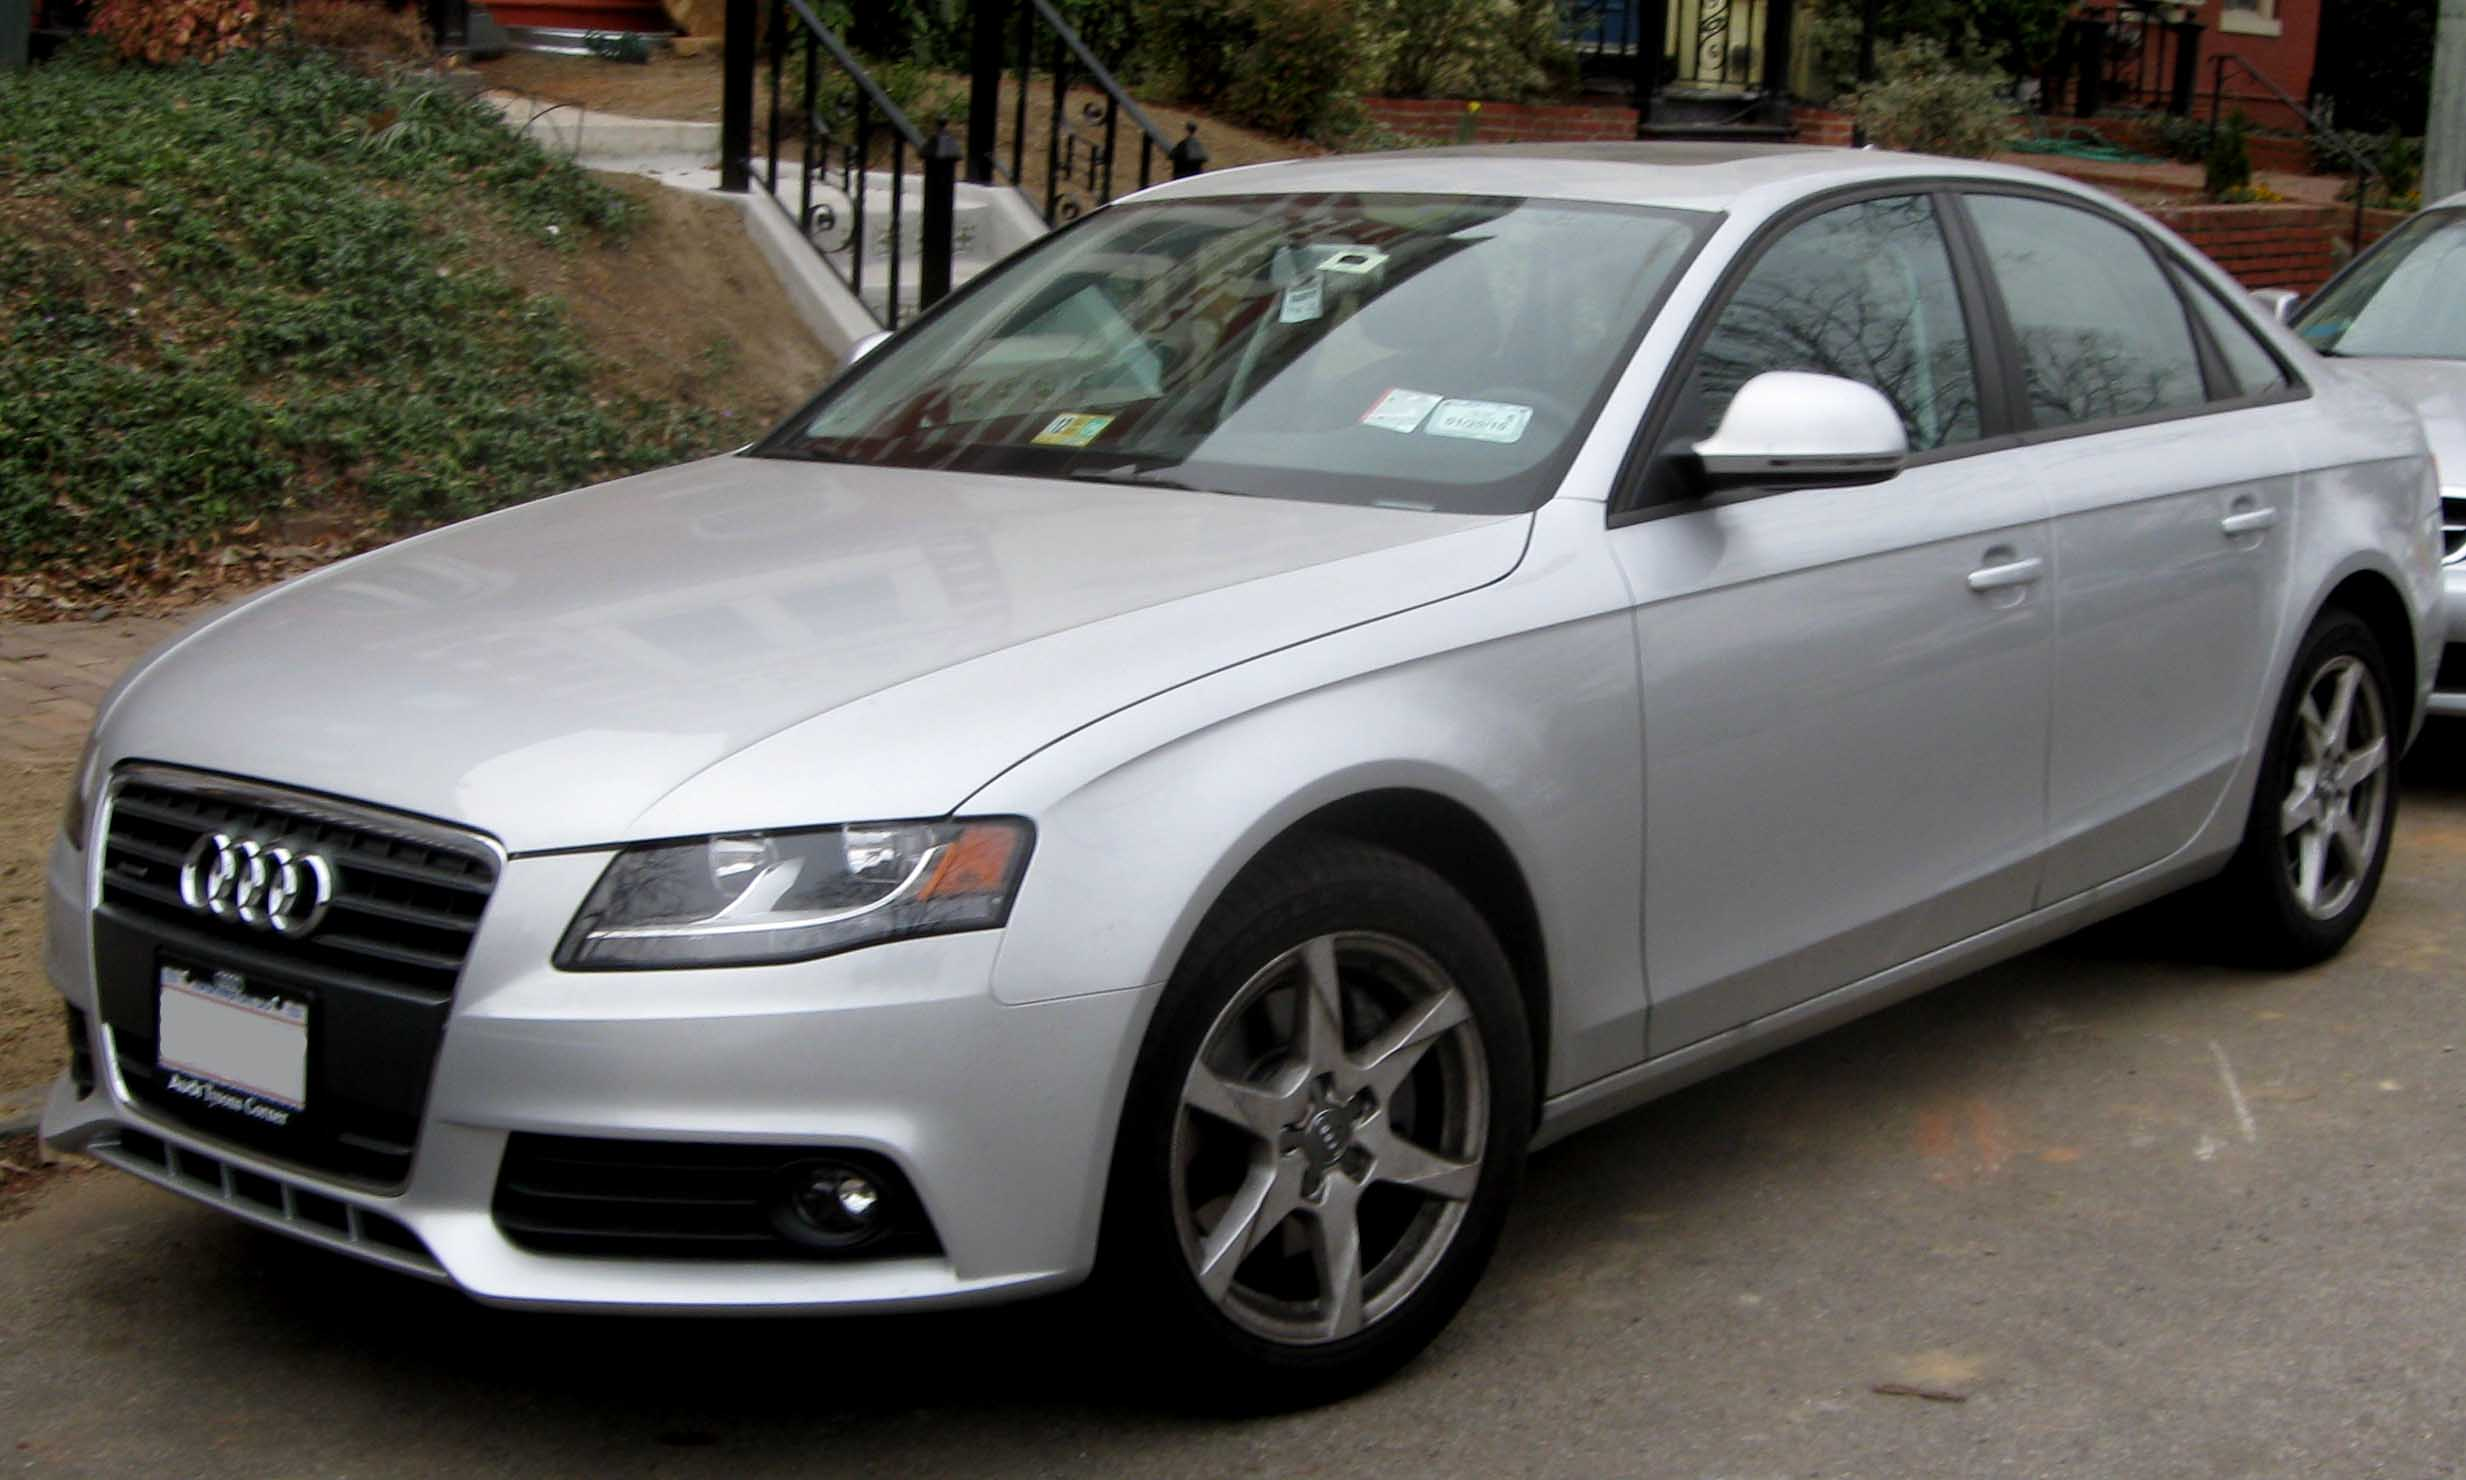 2009 audi a4 information and photos zombiedrive. Black Bedroom Furniture Sets. Home Design Ideas